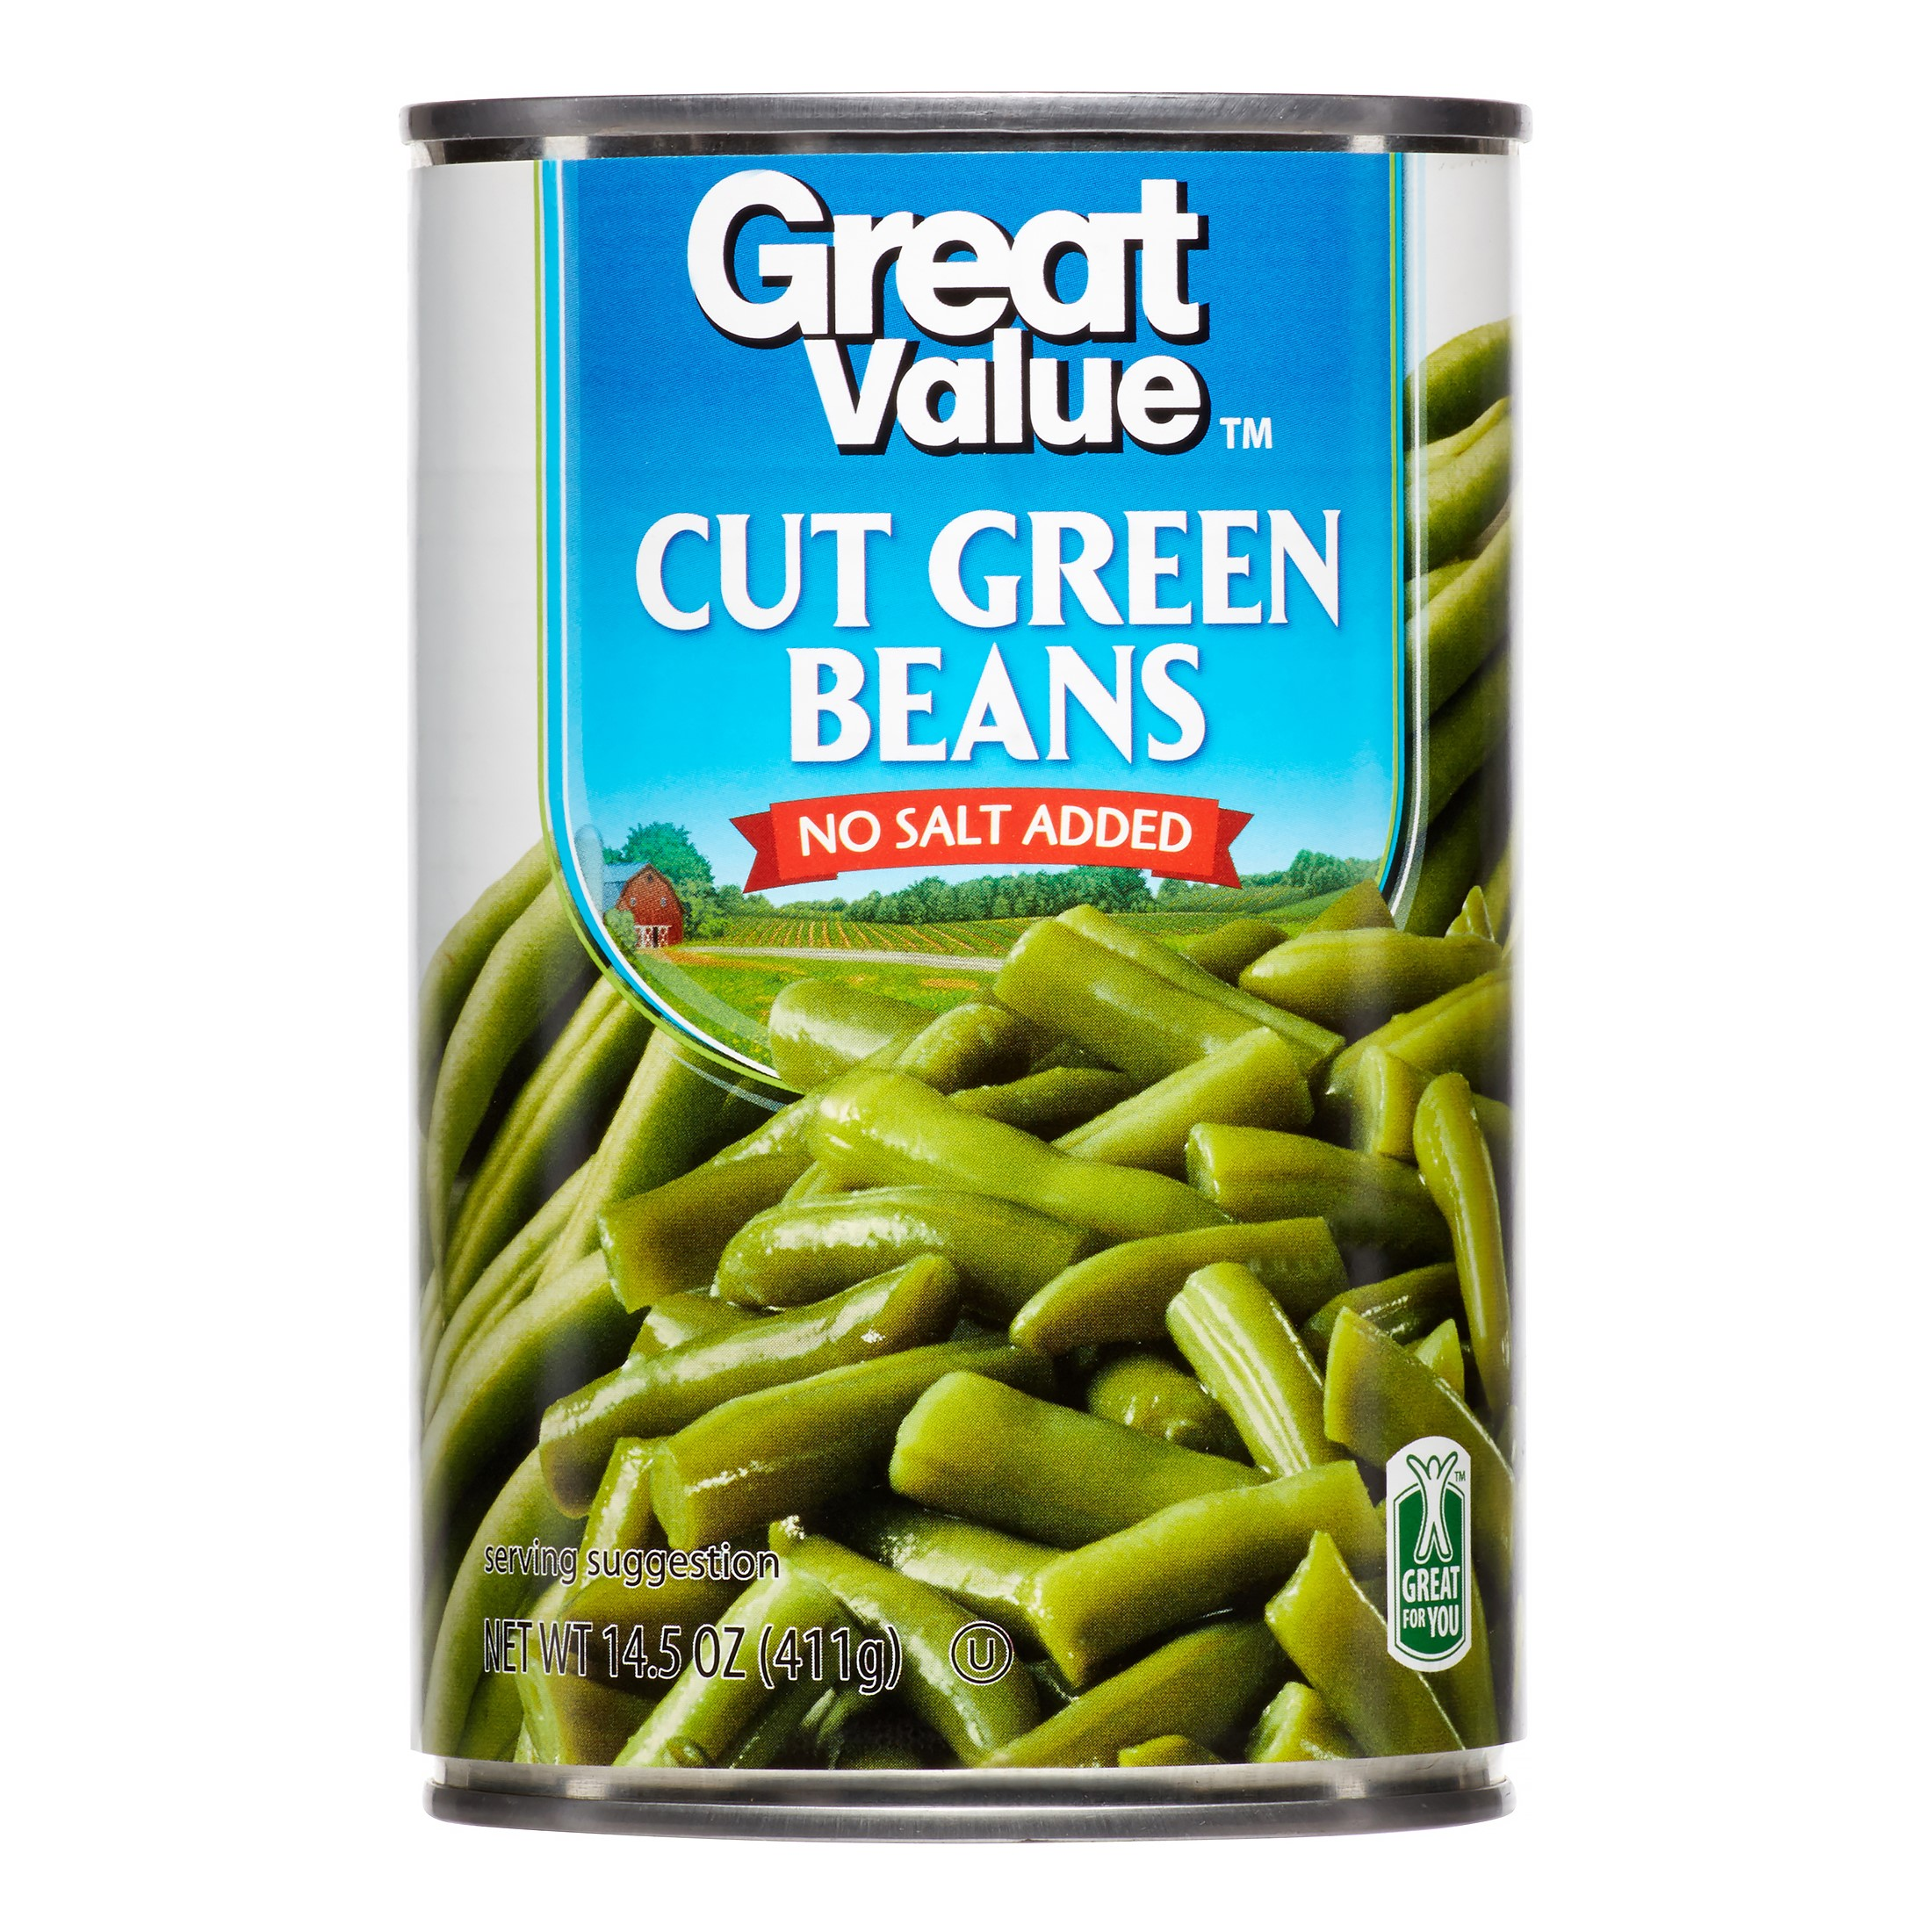 Great Value No Salt Added Cut Green Beans, 14.5 oz